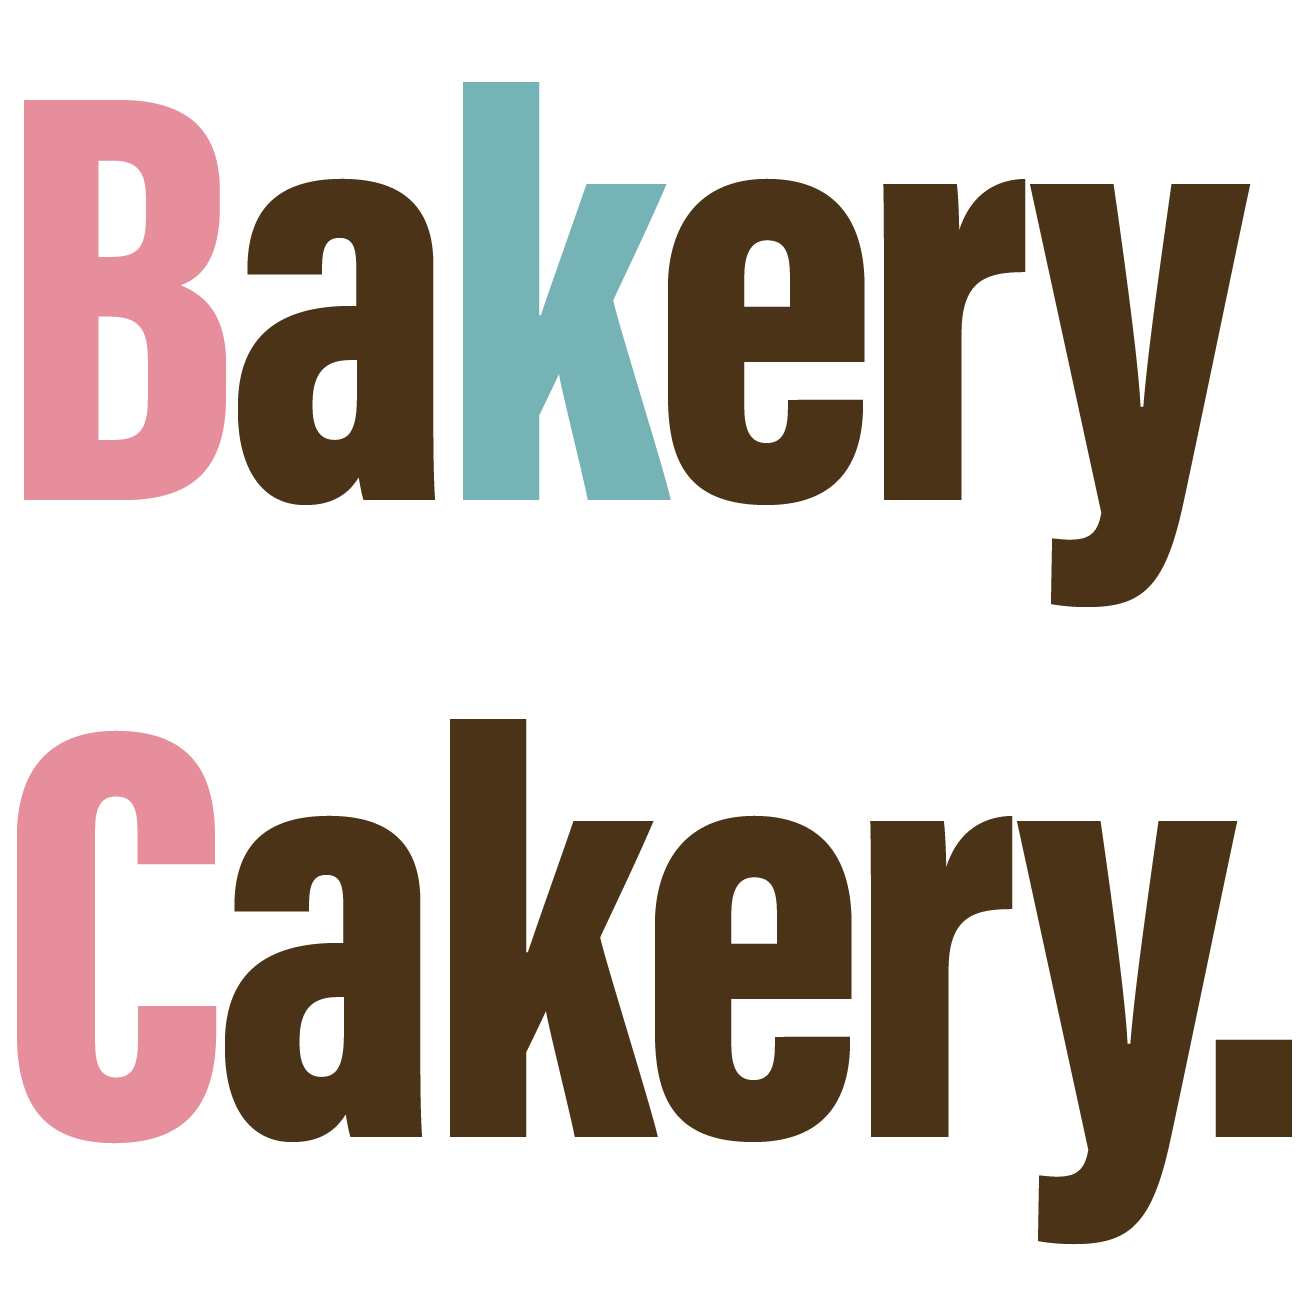 Bakery Cakery | Monthly Cake Subscription Boxes